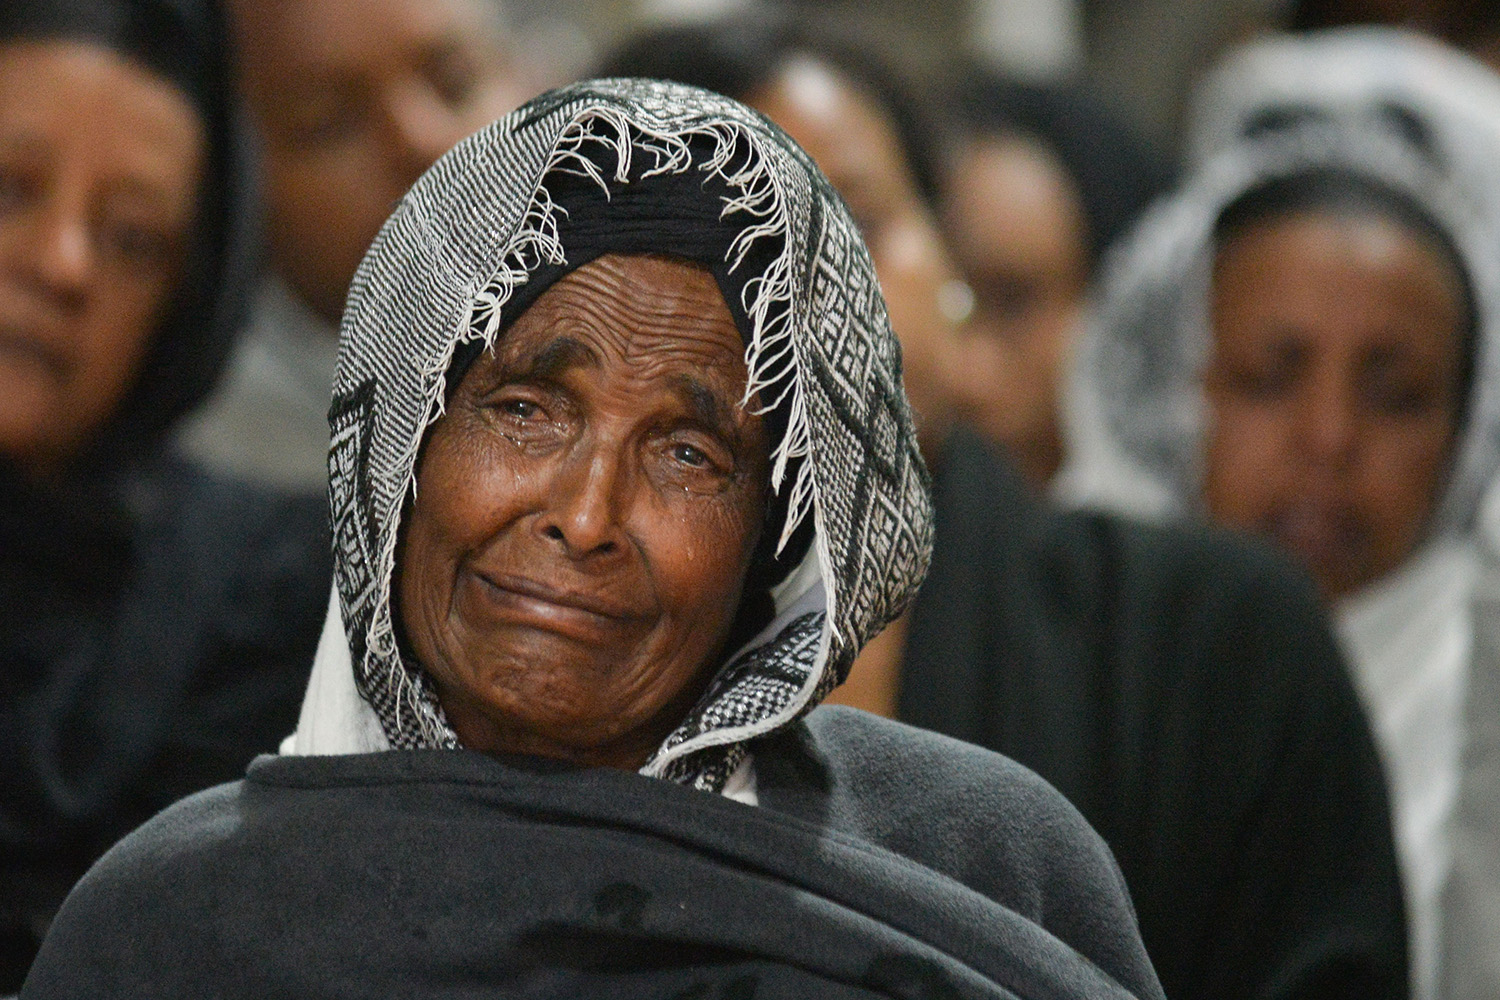 Family and friends of victims mourn at Holy Trinity Cathedral in Addis Ababa, Ethiopia, on March 8, two days before the one-year anniversary of the Ethiopian Airlines Flight 302 crash, which killed all 157 people on board in 2019. MICHAEL TEWELDE/AFP via Getty Images